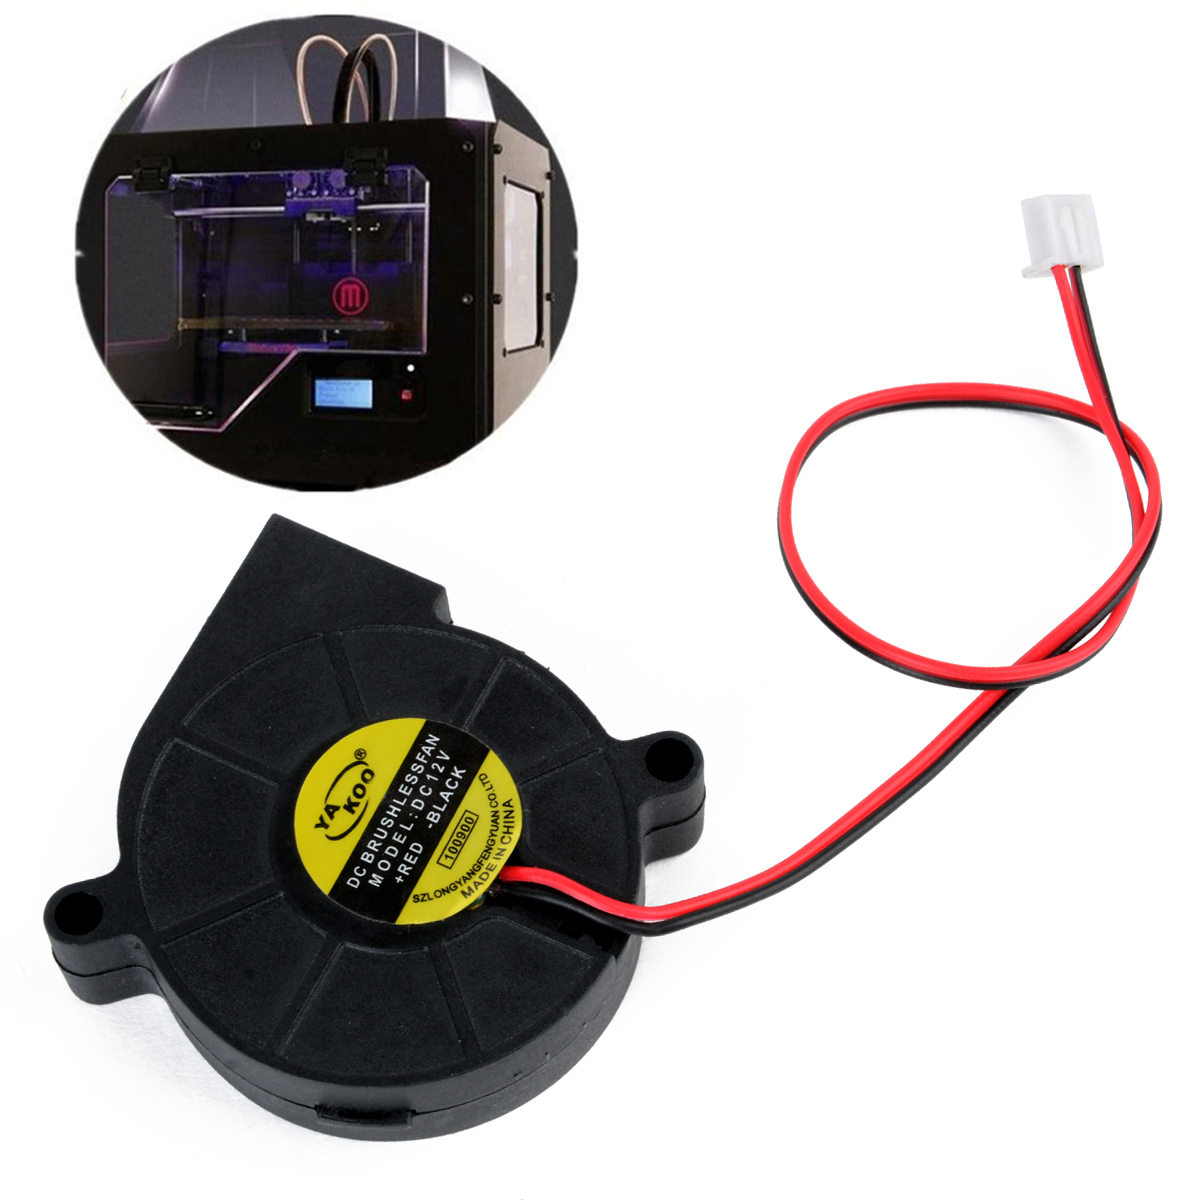 DC 12V 50mm Blow Radial Cooling Fan with Low Noise For Hotend / Extruder RepRap 3D Printer Parts